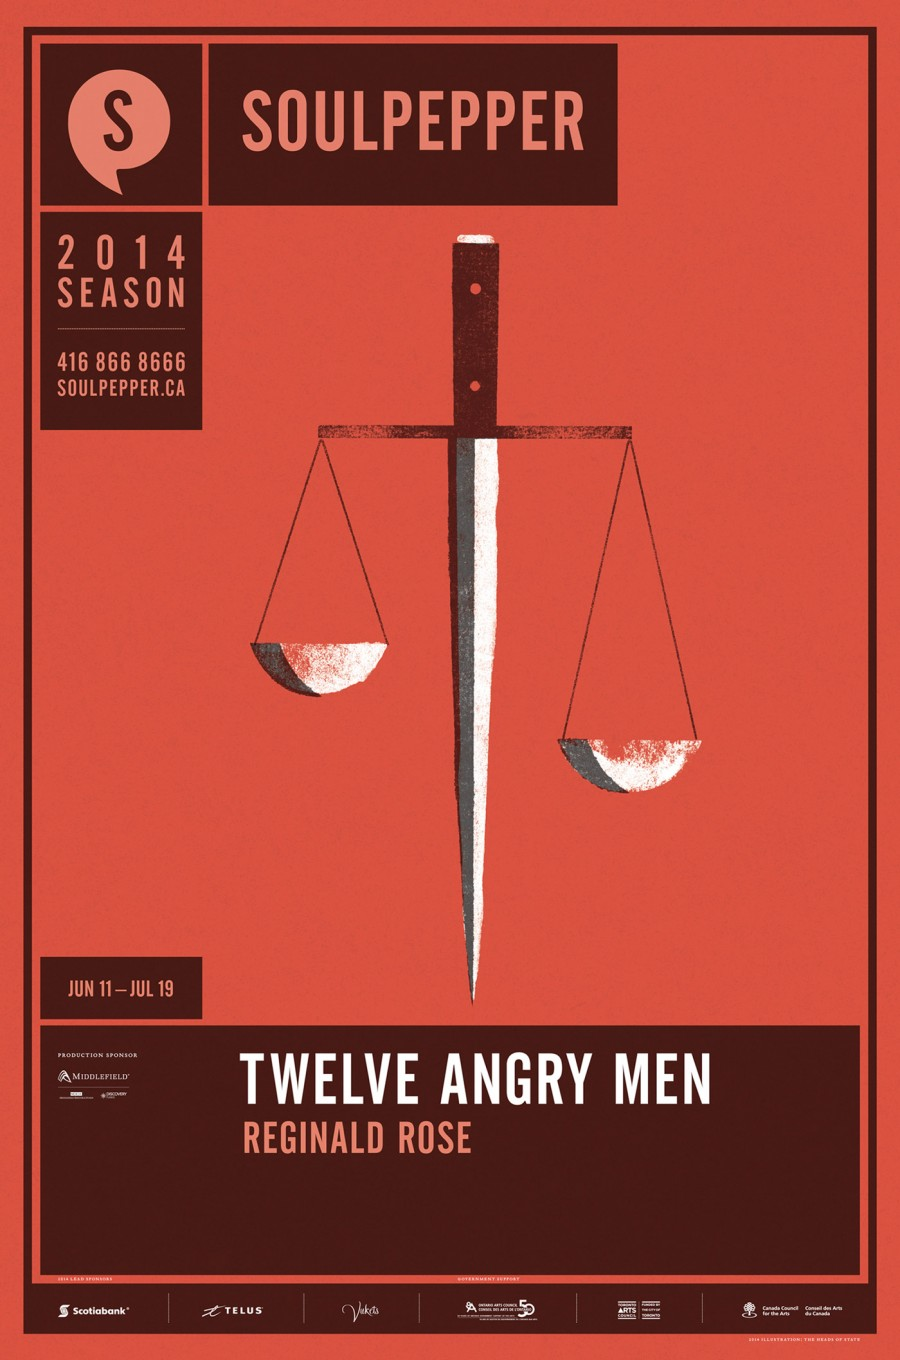 Twelve Angry Men - Soulpepper Theatre - 2014 Season Poster Series - The Heads of State